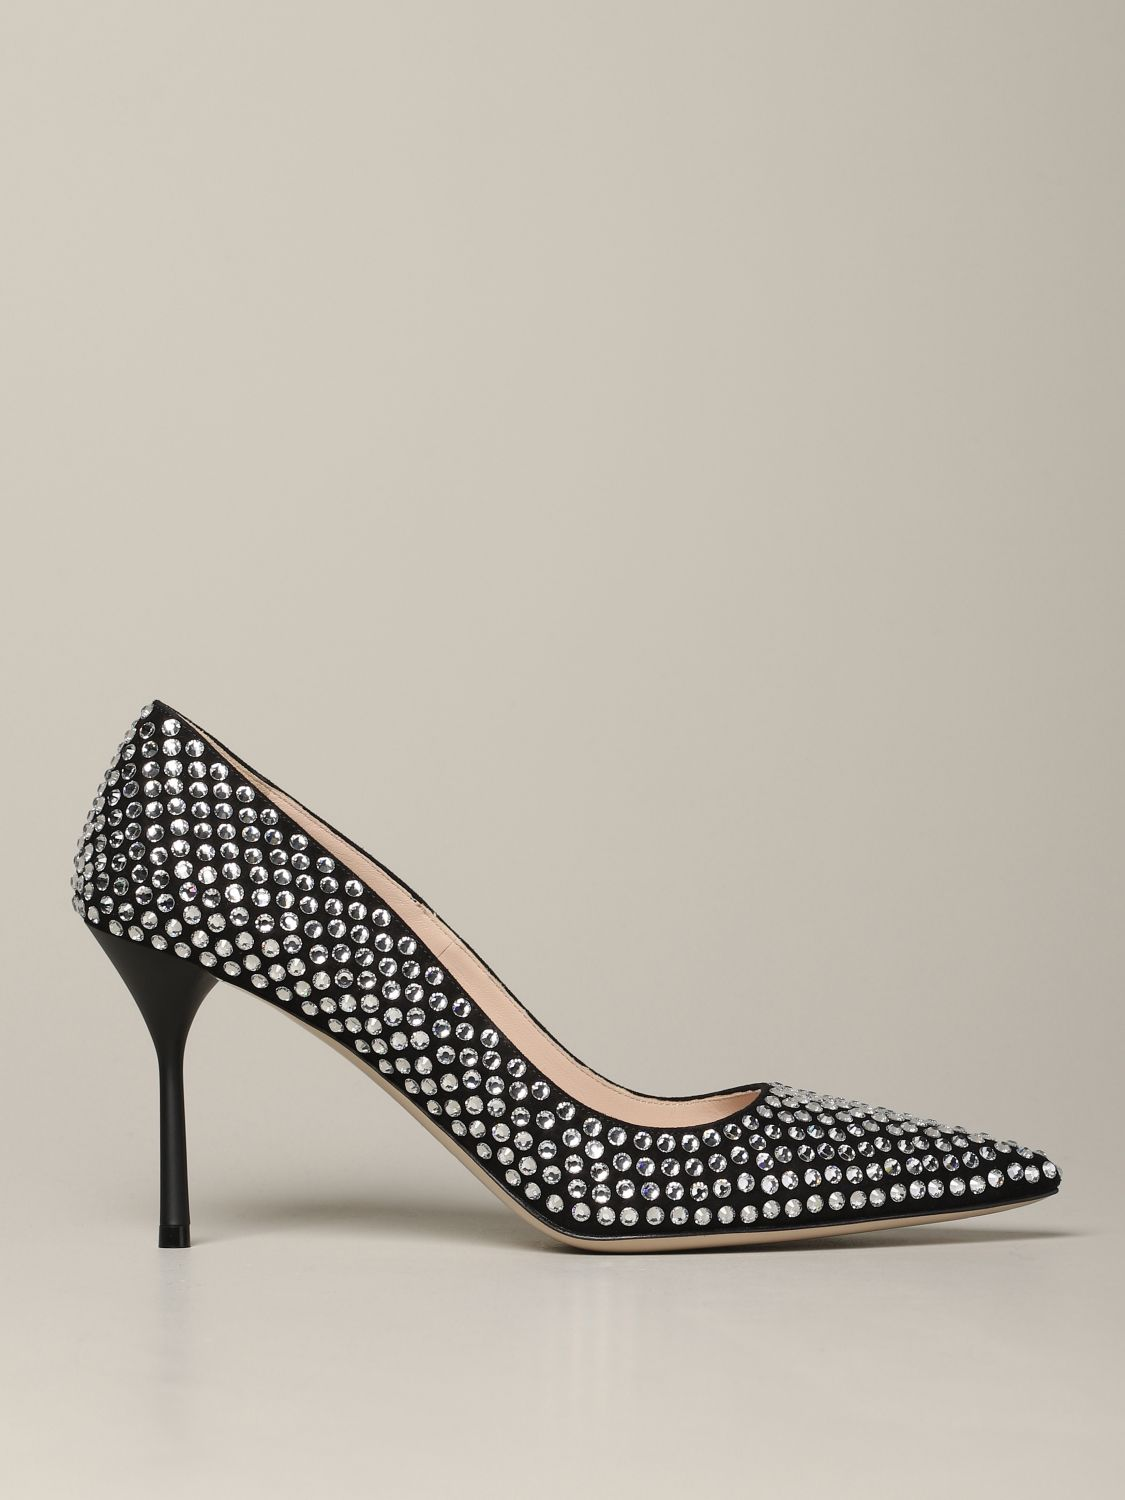 Miu Miu pumps with all-over rhinestones black 1